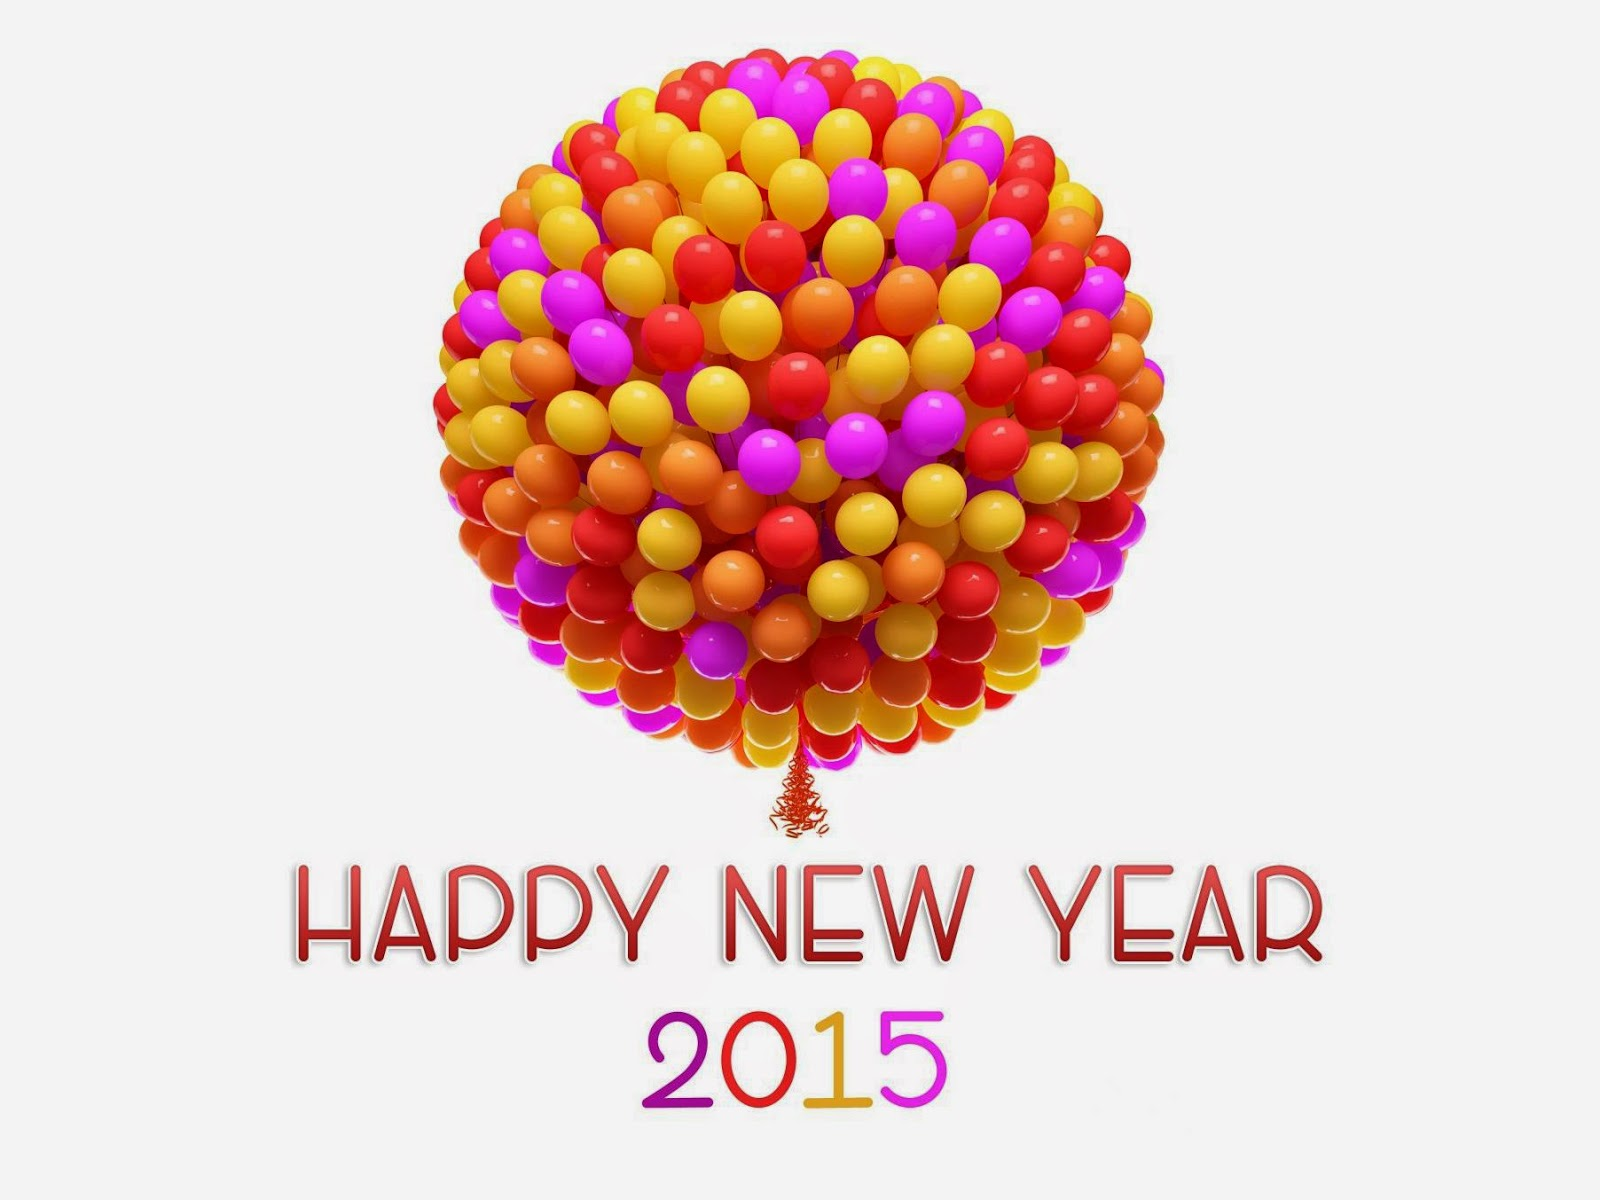 Happy-New-Year-2015-Greetings-Cards-Images-for-Whatsapp-Facebook5.jpg